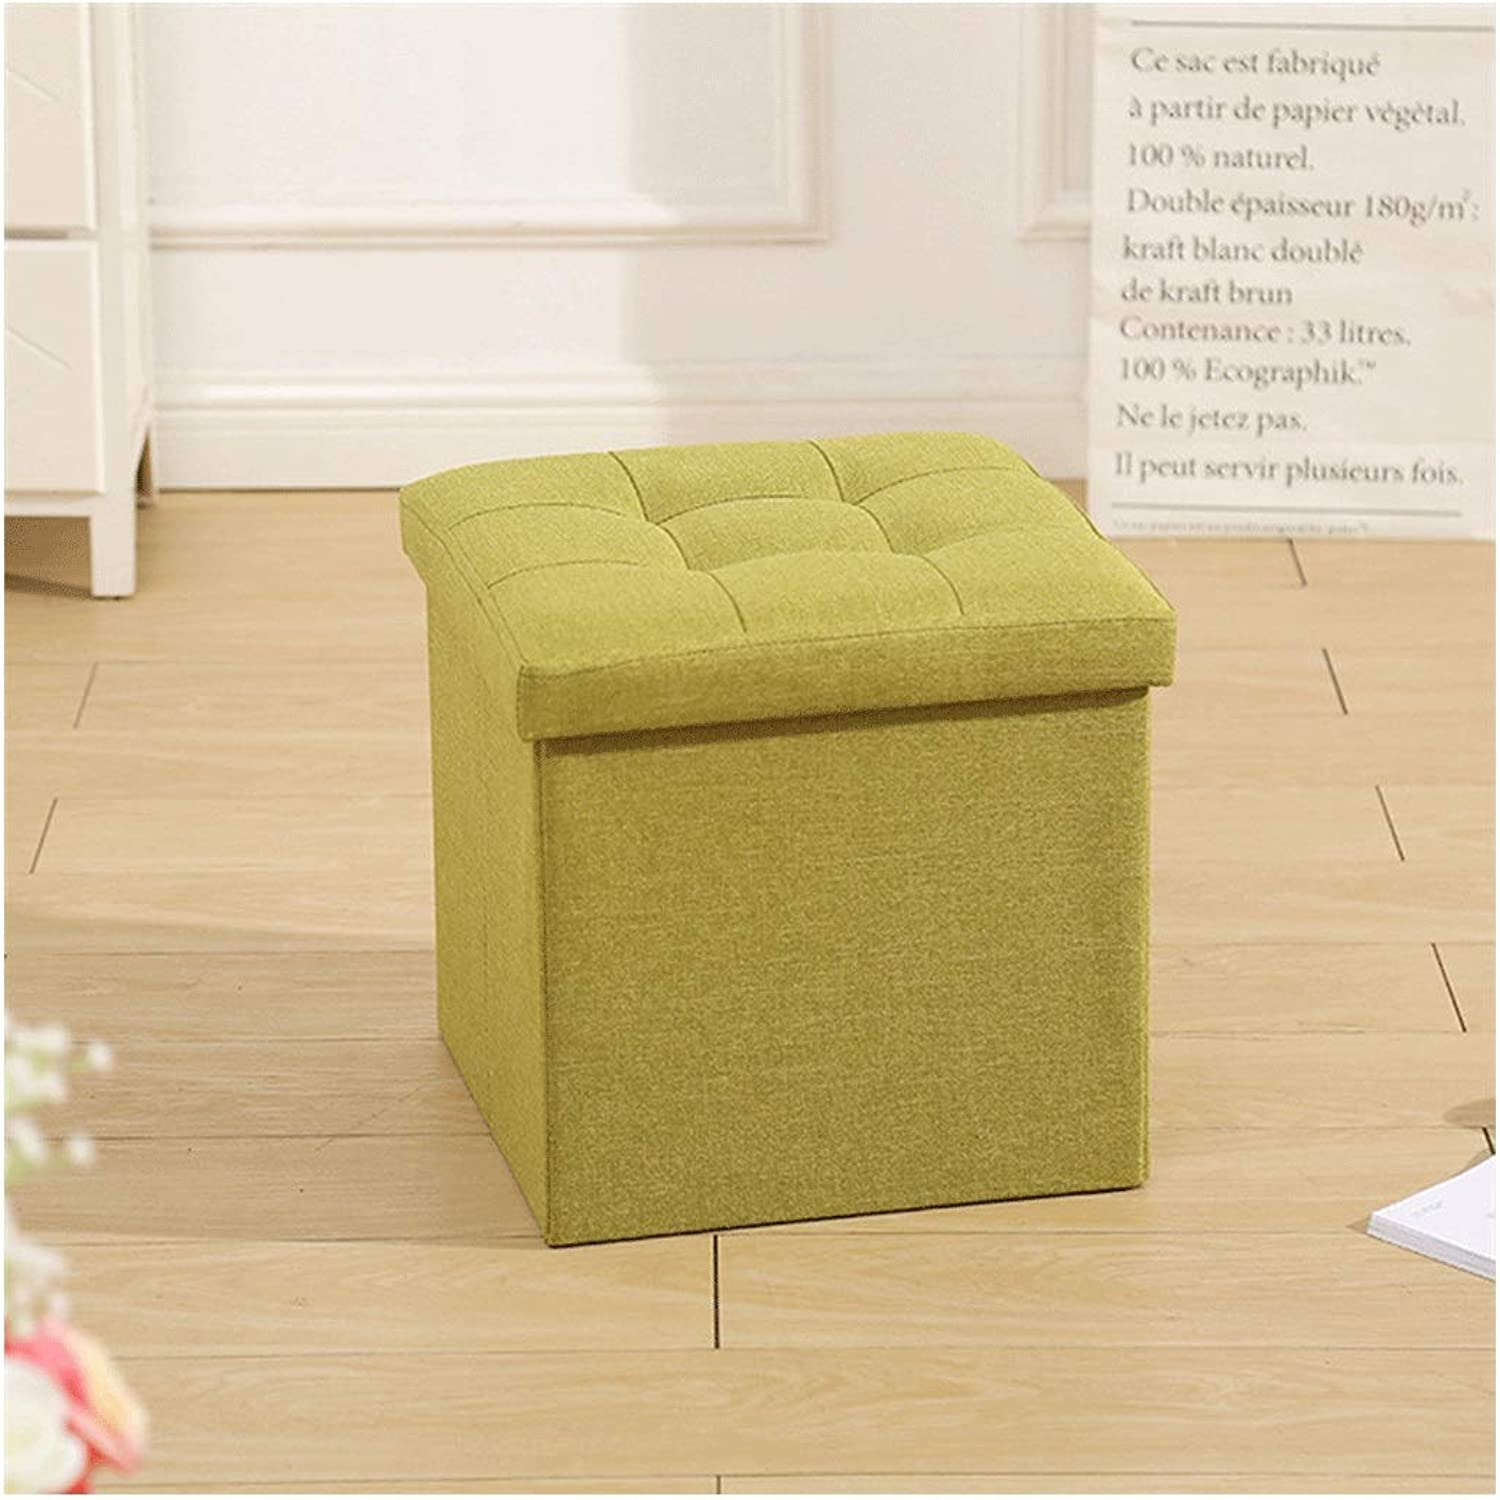 Cotton and Linen Storage Stool Multi-Function Storage Storage Stool Sofa Stool Folding Cotton Fabric Toy Storage Stool shoes Bench 38  38  38cm (color   Green, Size   38  38  38CM)